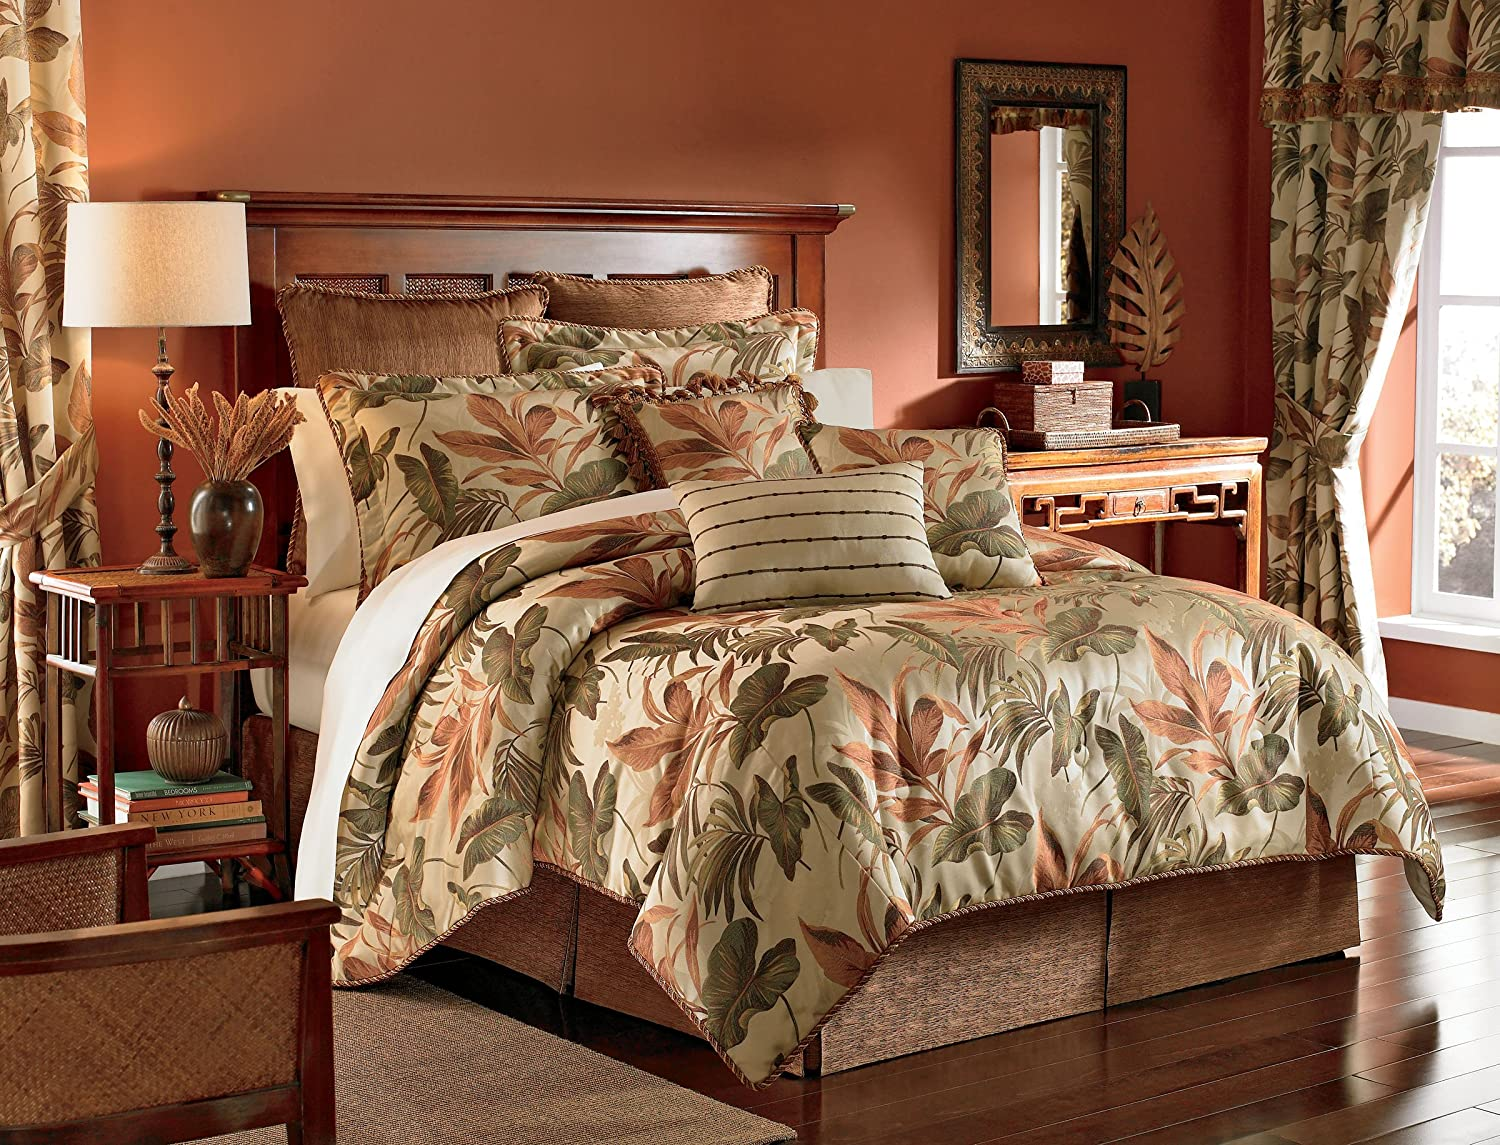 king size comforter sets amazon Amazon.com: Croscill Home Fashions Bali 4 Piece Harvest King Size  king size comforter sets amazon